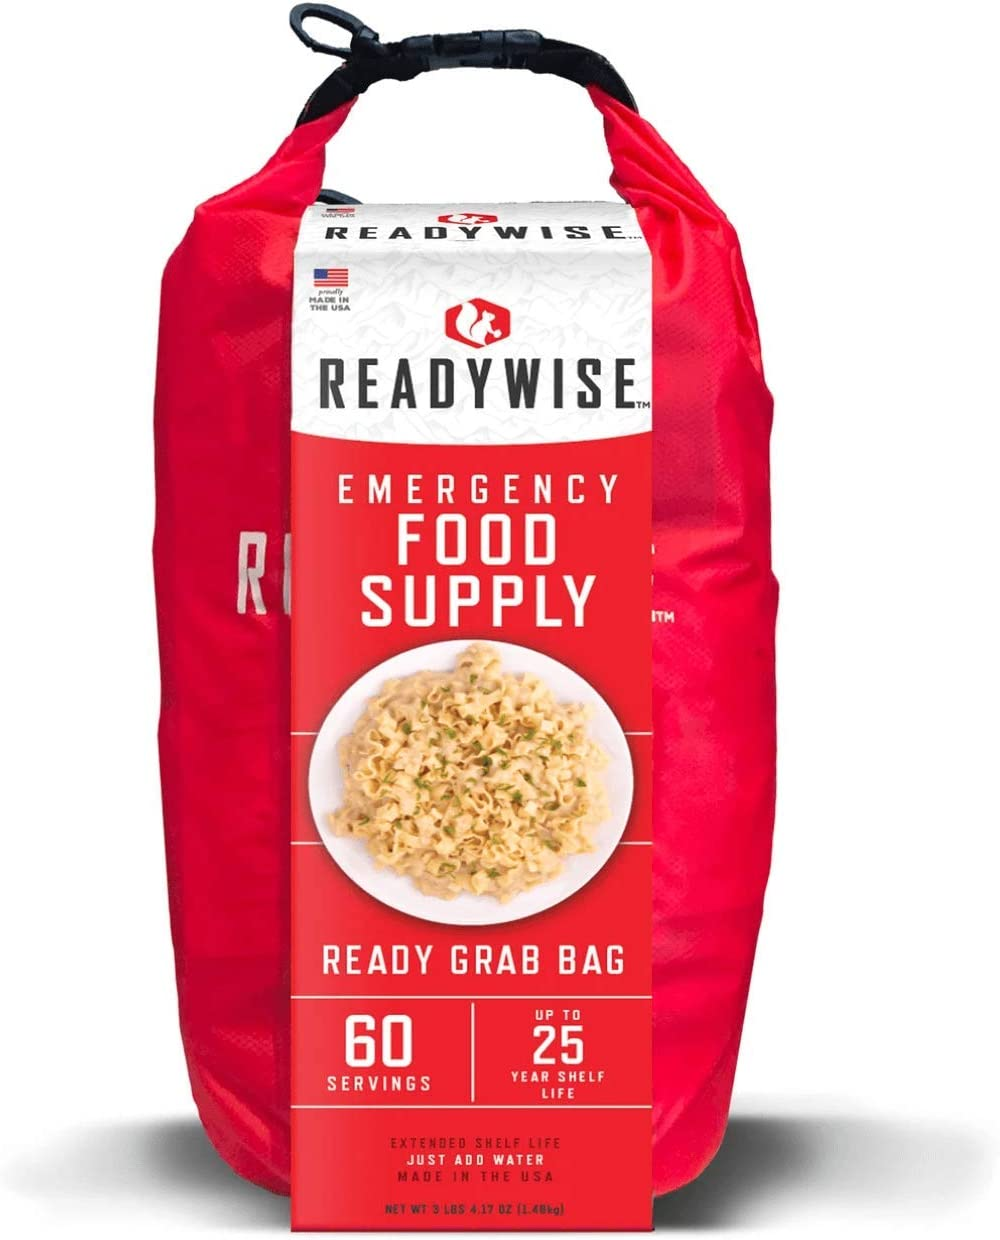 Wise Company Emergency Food Supply Ready Grab Bag